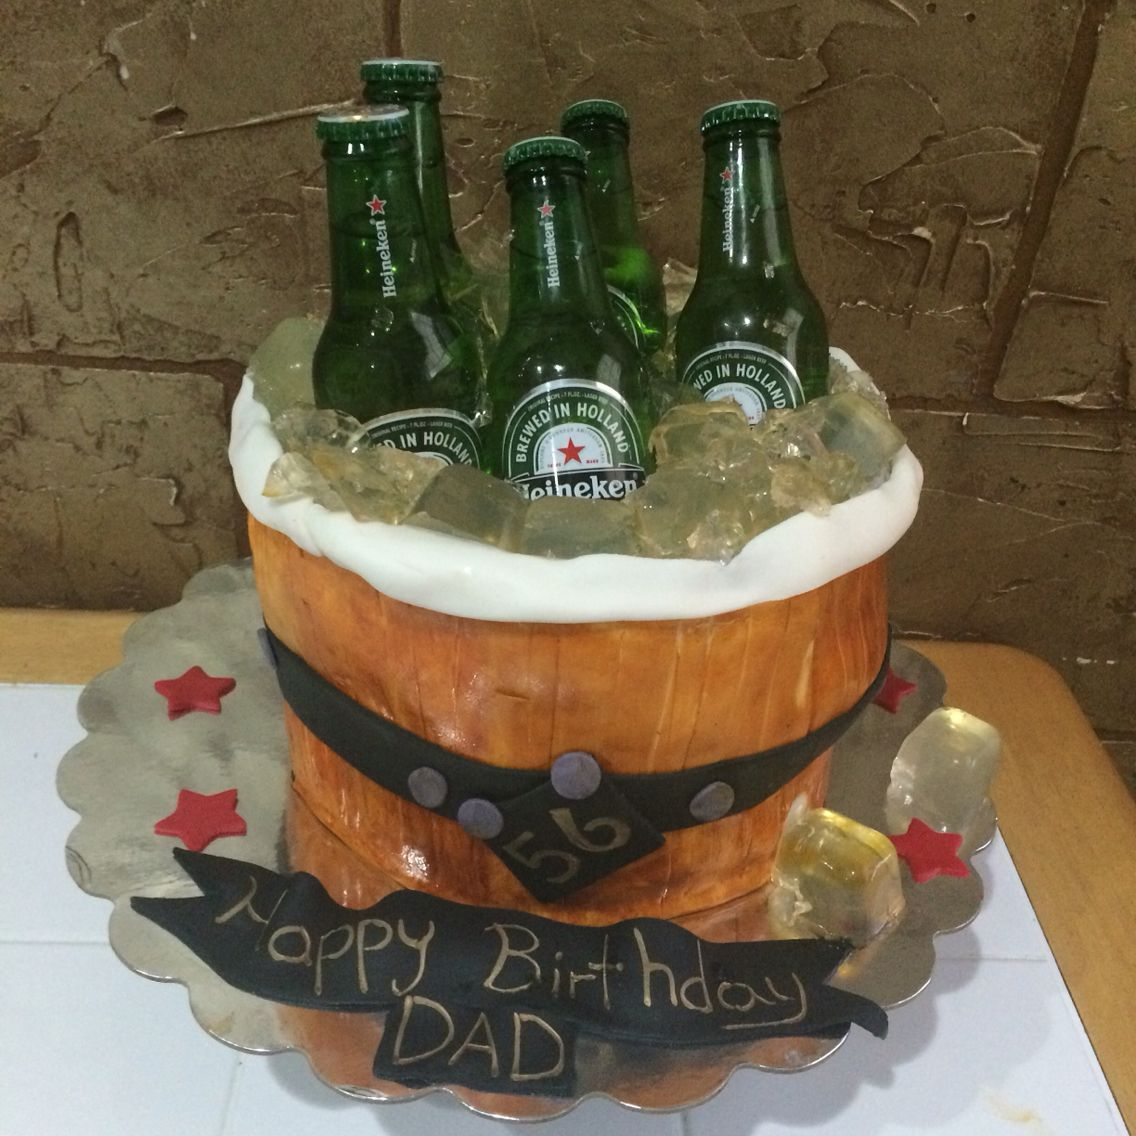 Cake Ideas For Dads Birthday : Heineken cake, ideas for Father s Day, dad cake, men cake ...